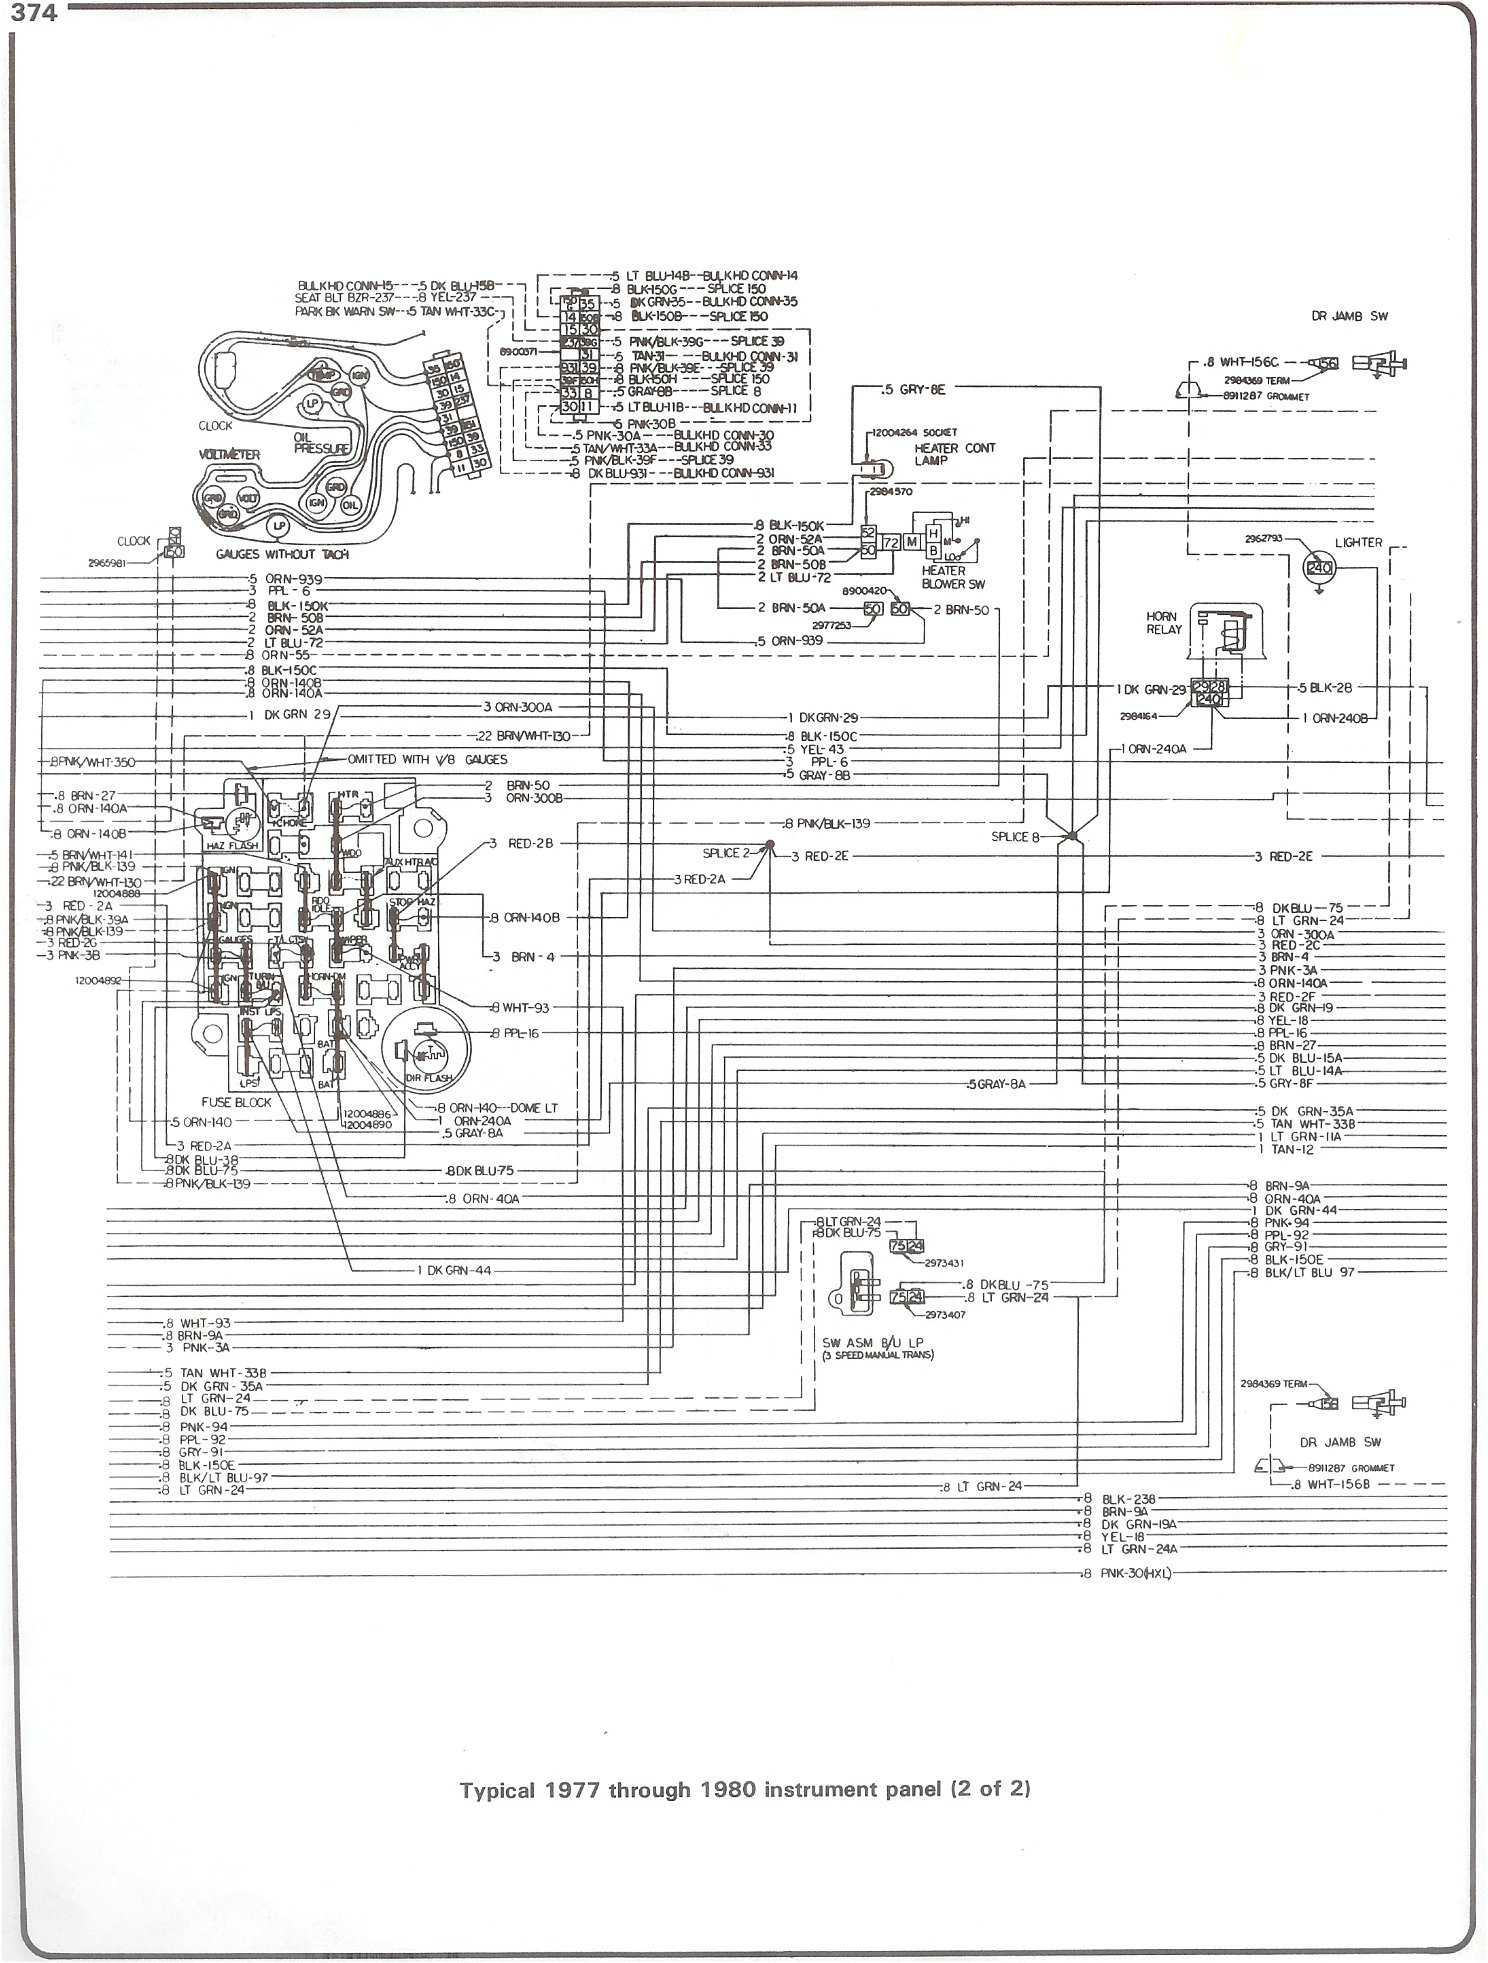 complete 73 87 wiring diagrams rh forum 73 87chevytrucks com GMC Van Wiring Diagram 85 Chevy Truck Wiring Diagram